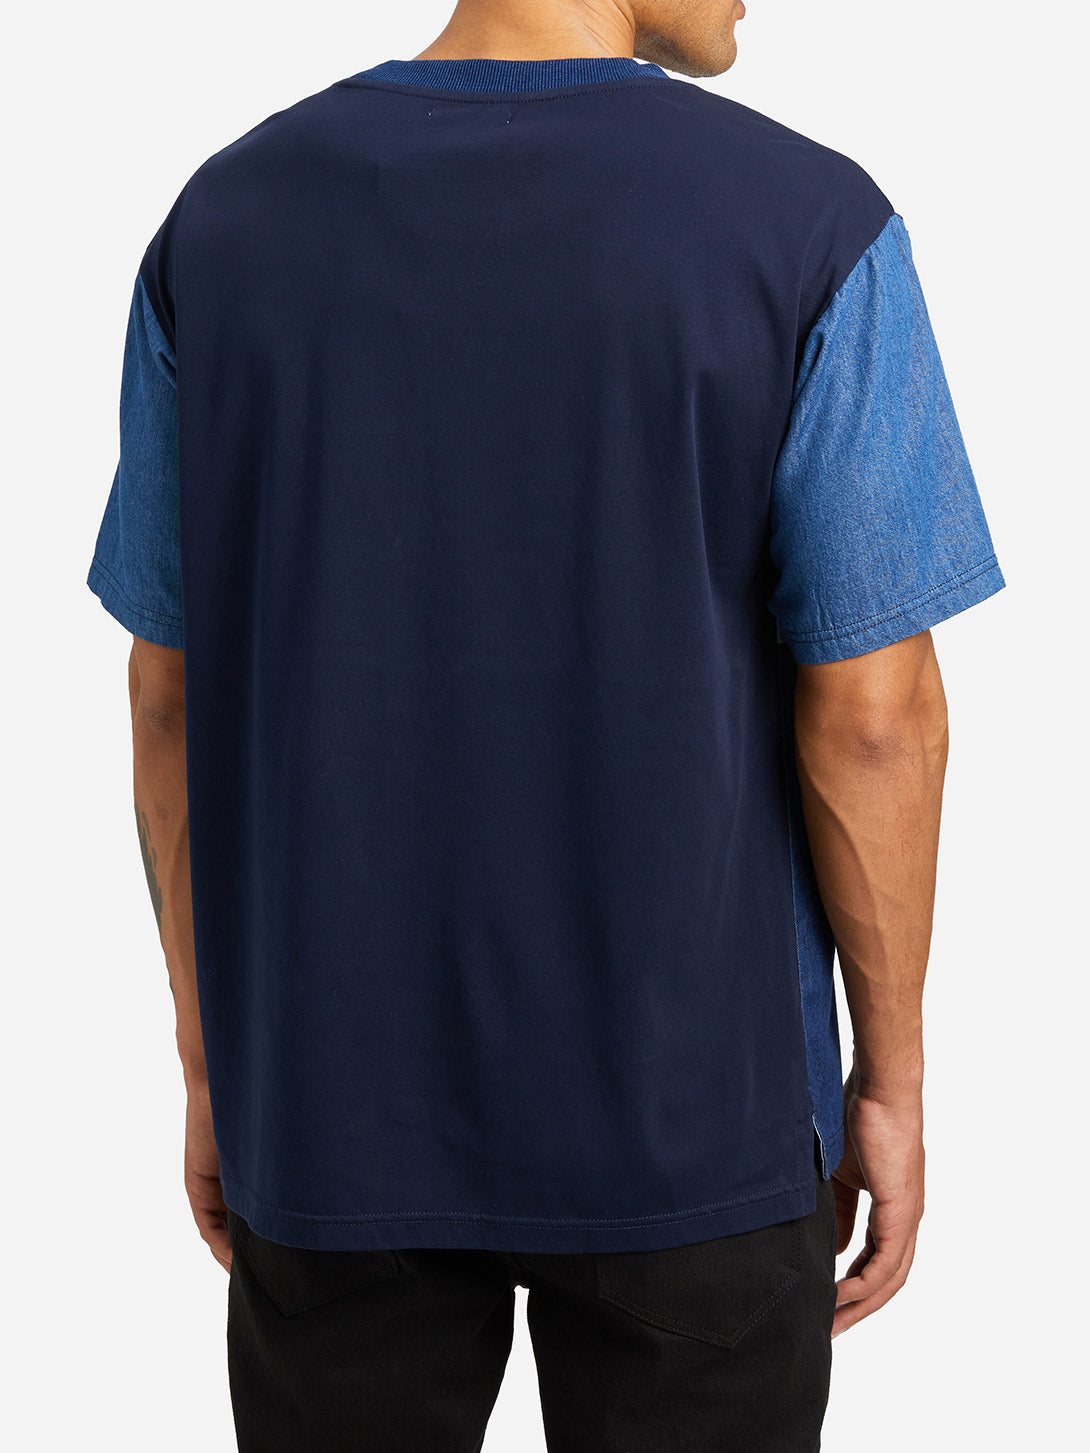 MEDIUM INDIGO shirt sleeve crew neck t shirt mens varick indigo patchwork tee md indigo